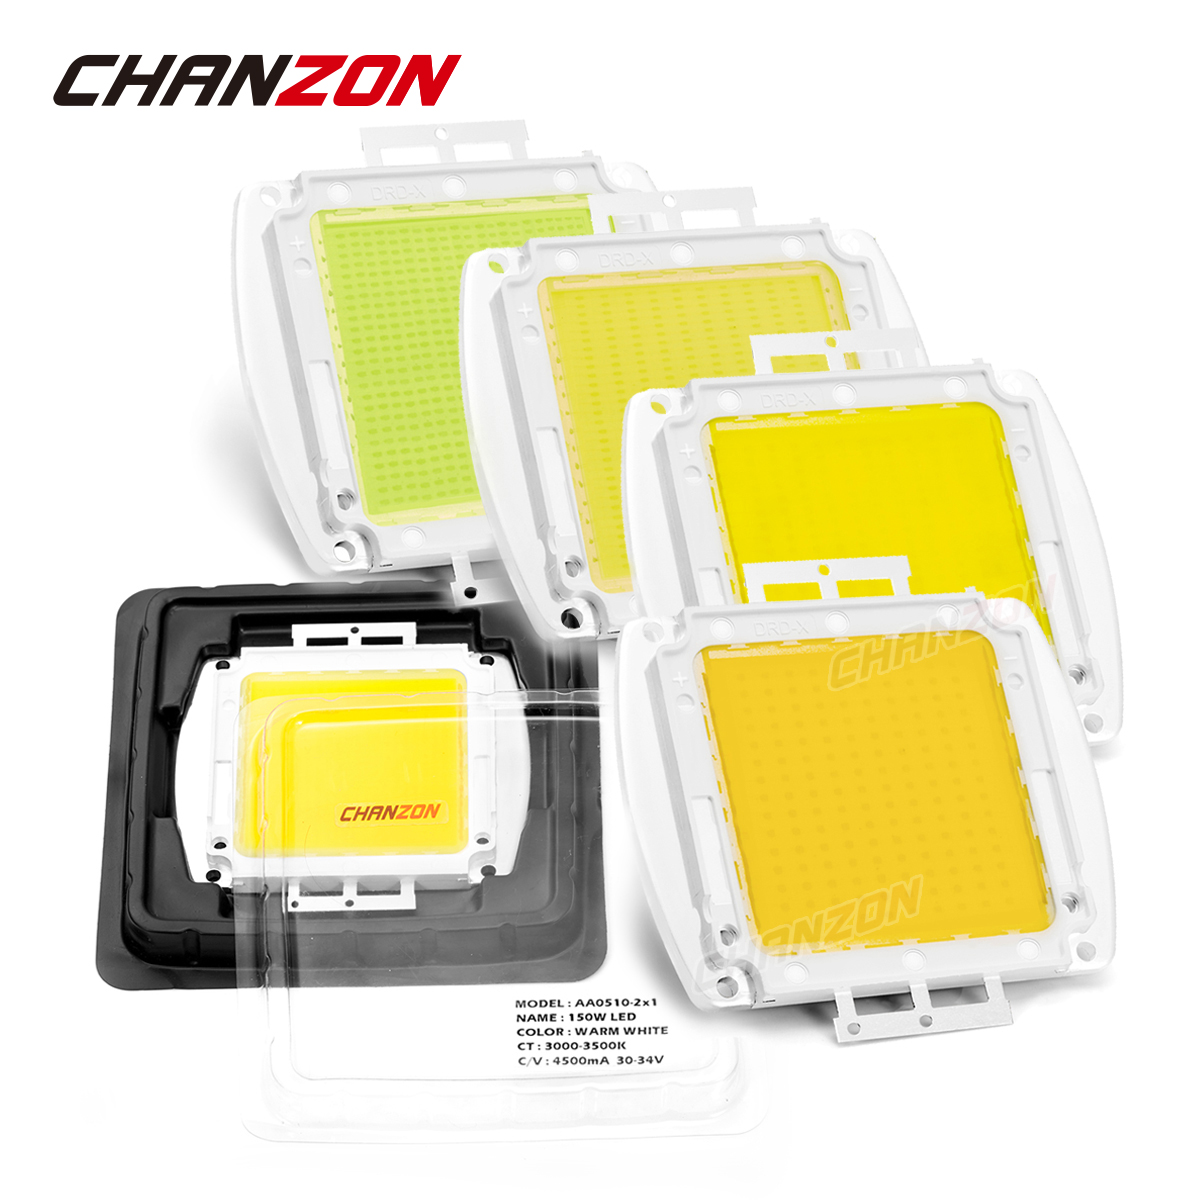 CHANZON High Power LED SMD COB Bulb Chip 150W 200W 300W 500W Natural Cool Warm White 150 200 300 500 W Watt for Outdoor Light